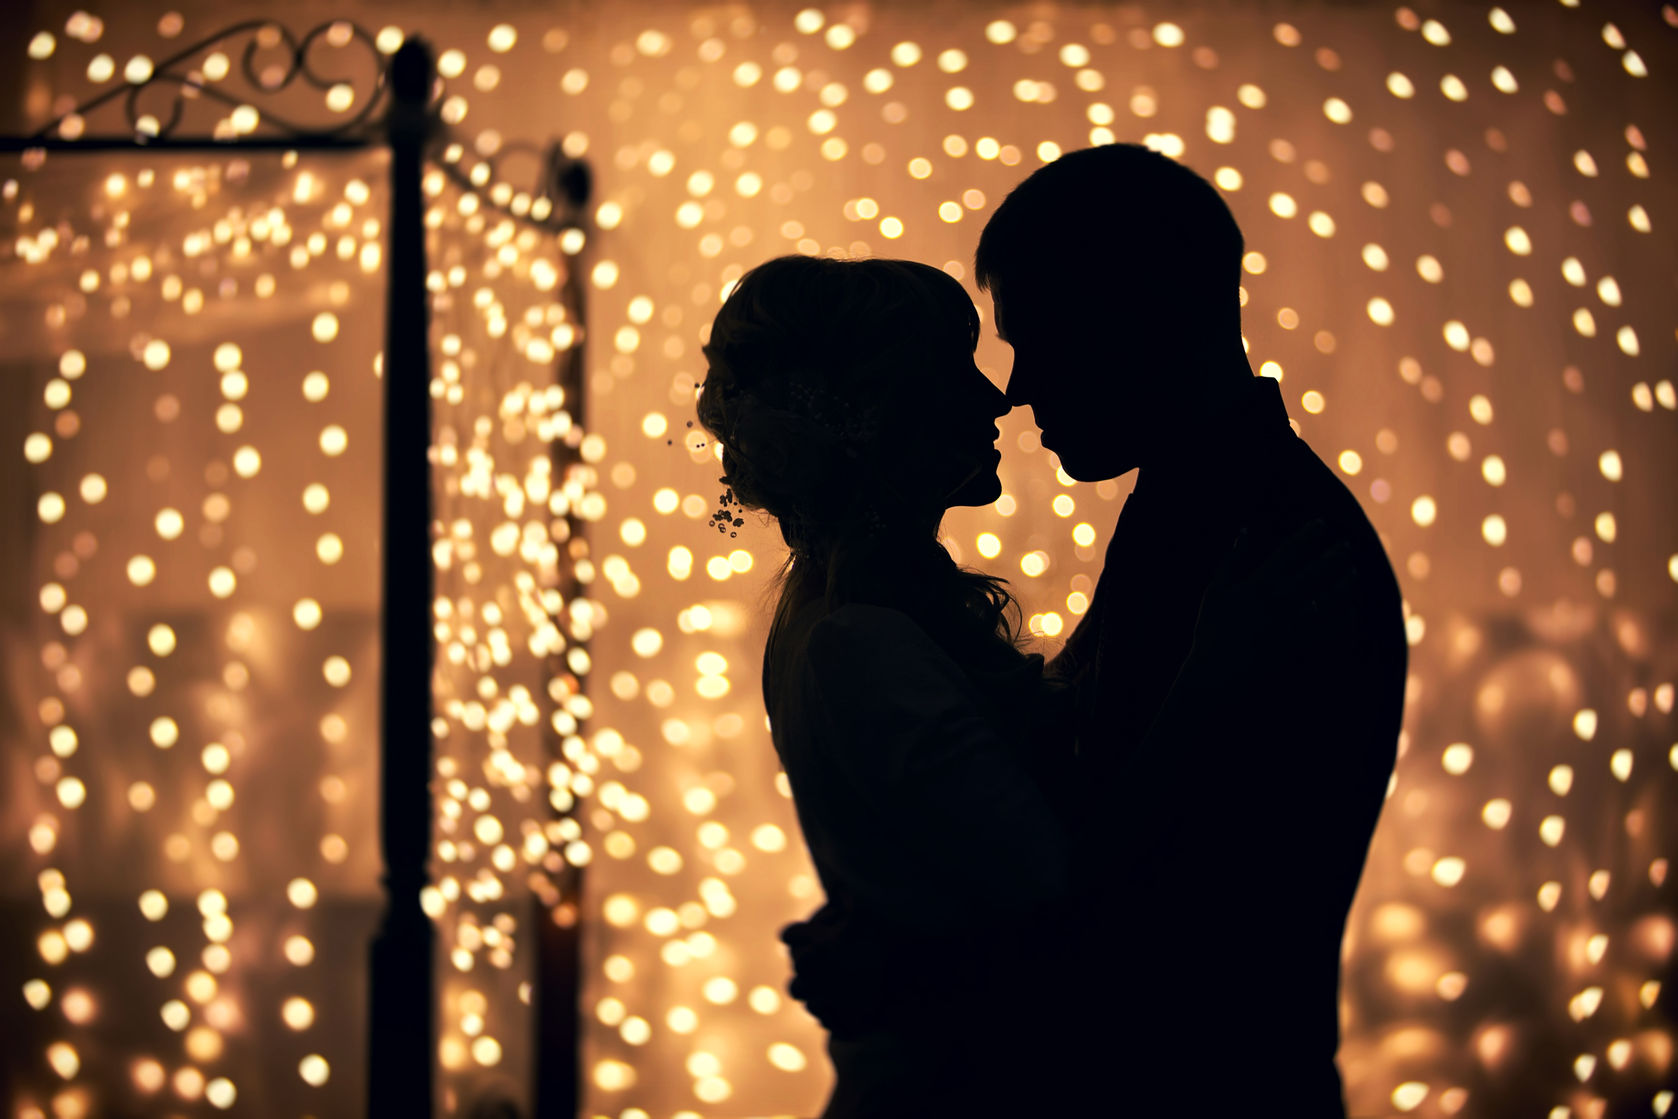 48319615 - hugs lovers in silhouette against the background of garlands of lights